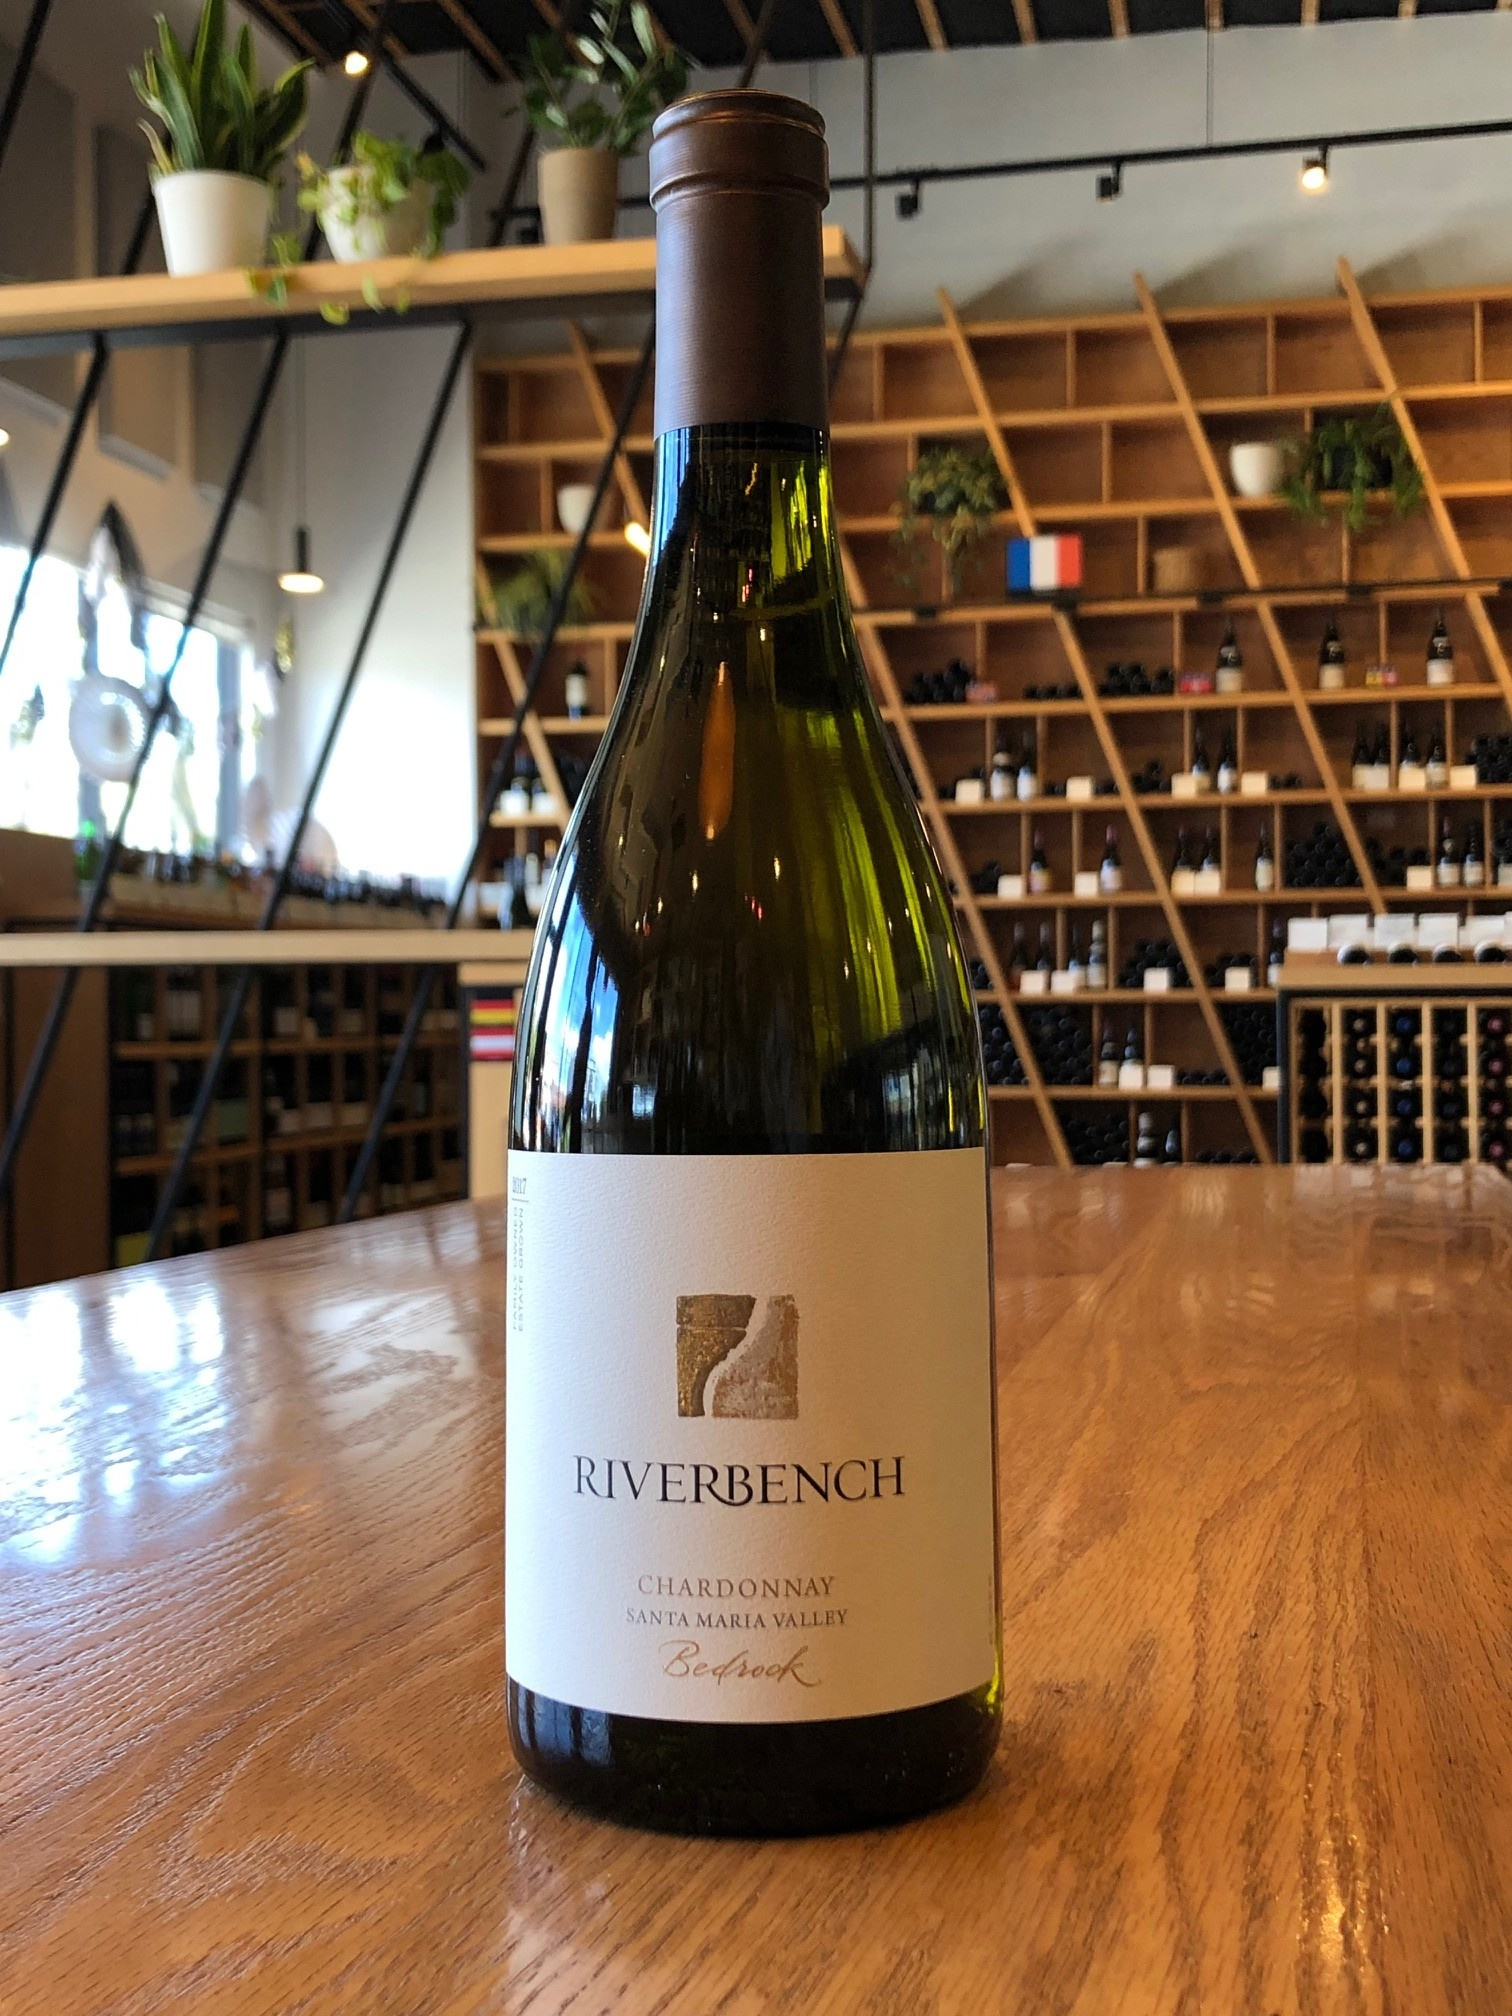 Riverbench 2017 Riverbench Chardonnay Bedrock 750ml